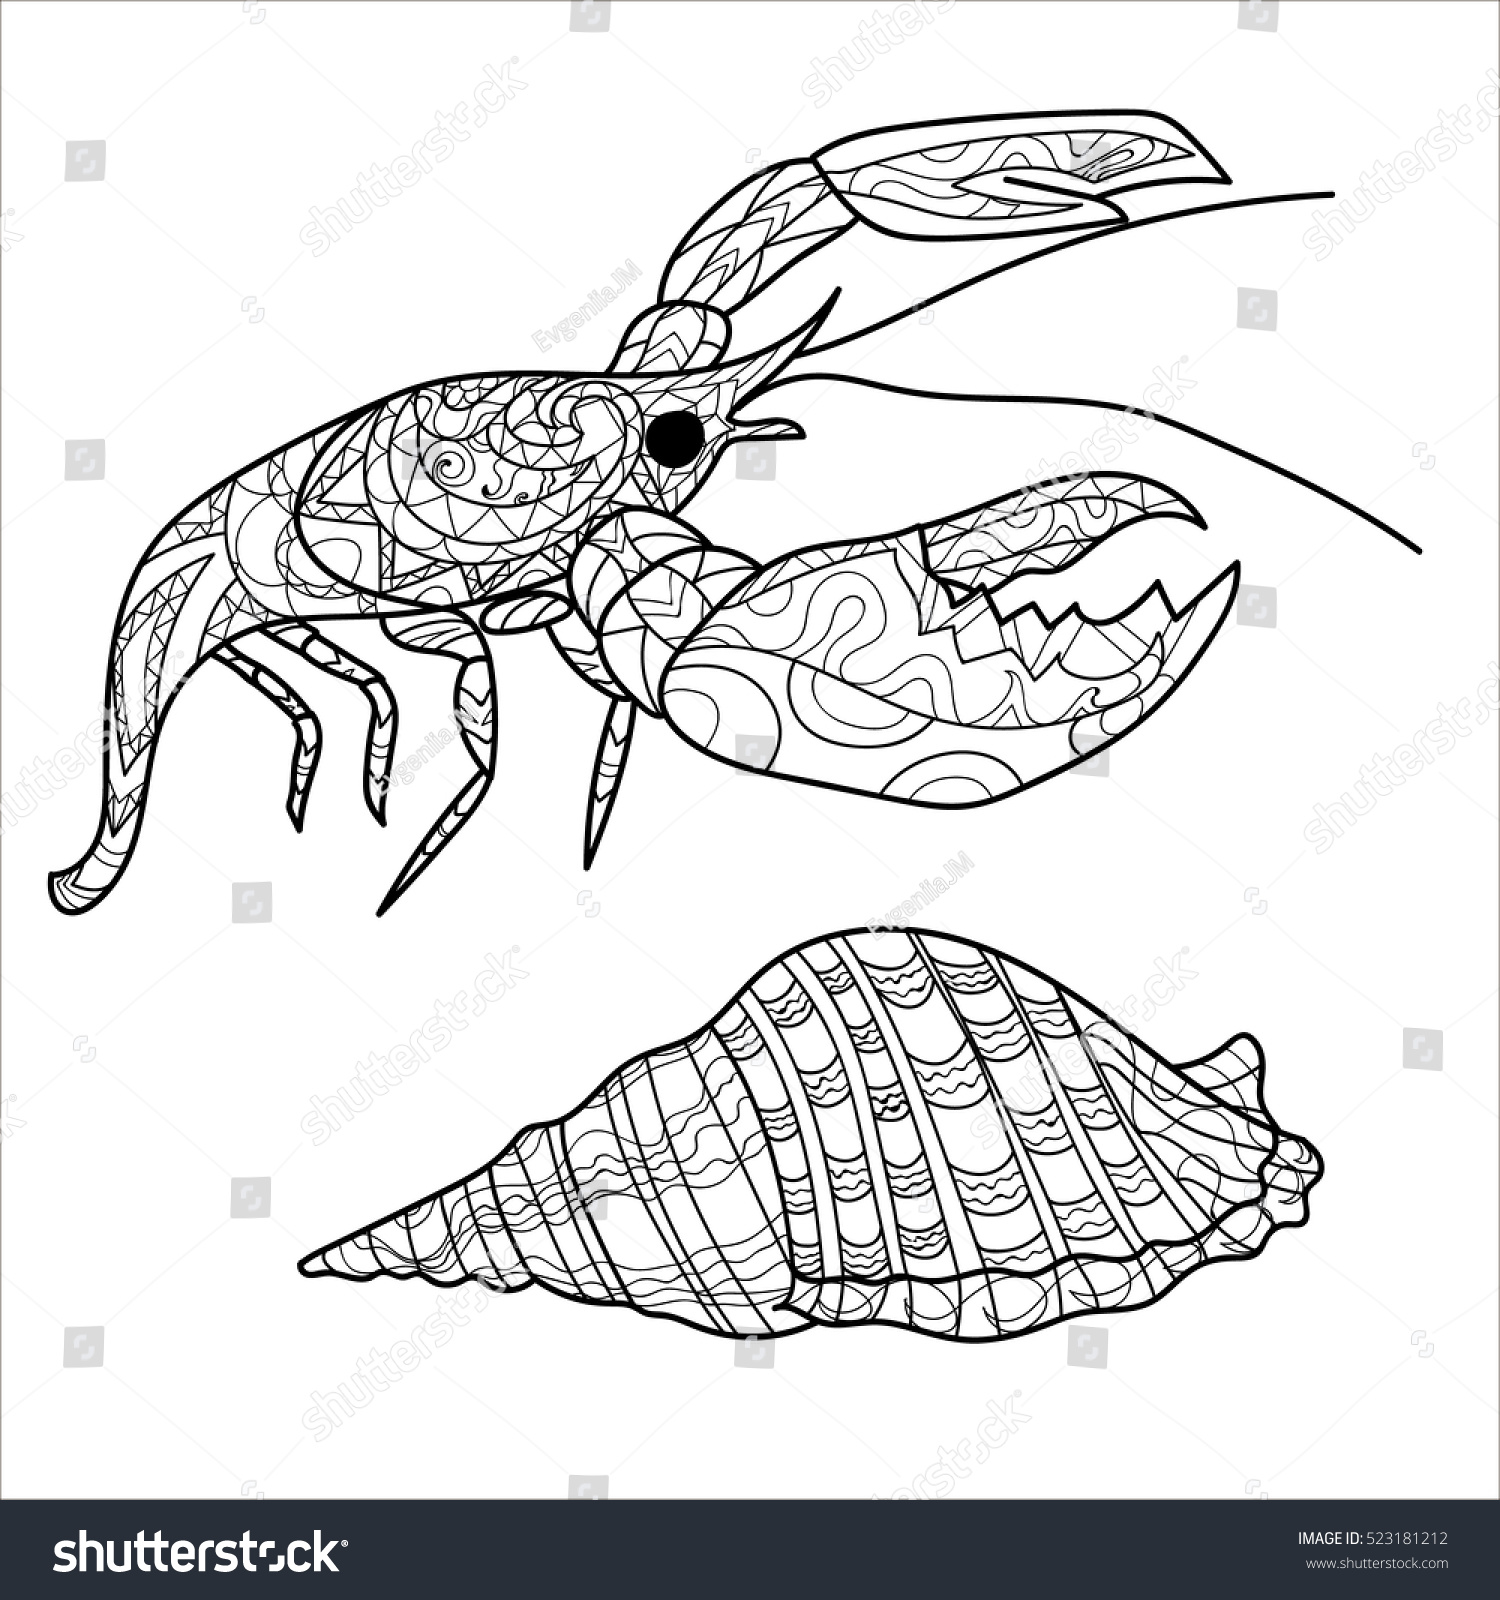 crayfish coloring page - crayfish lobster pattern coloring stock vector 523181212